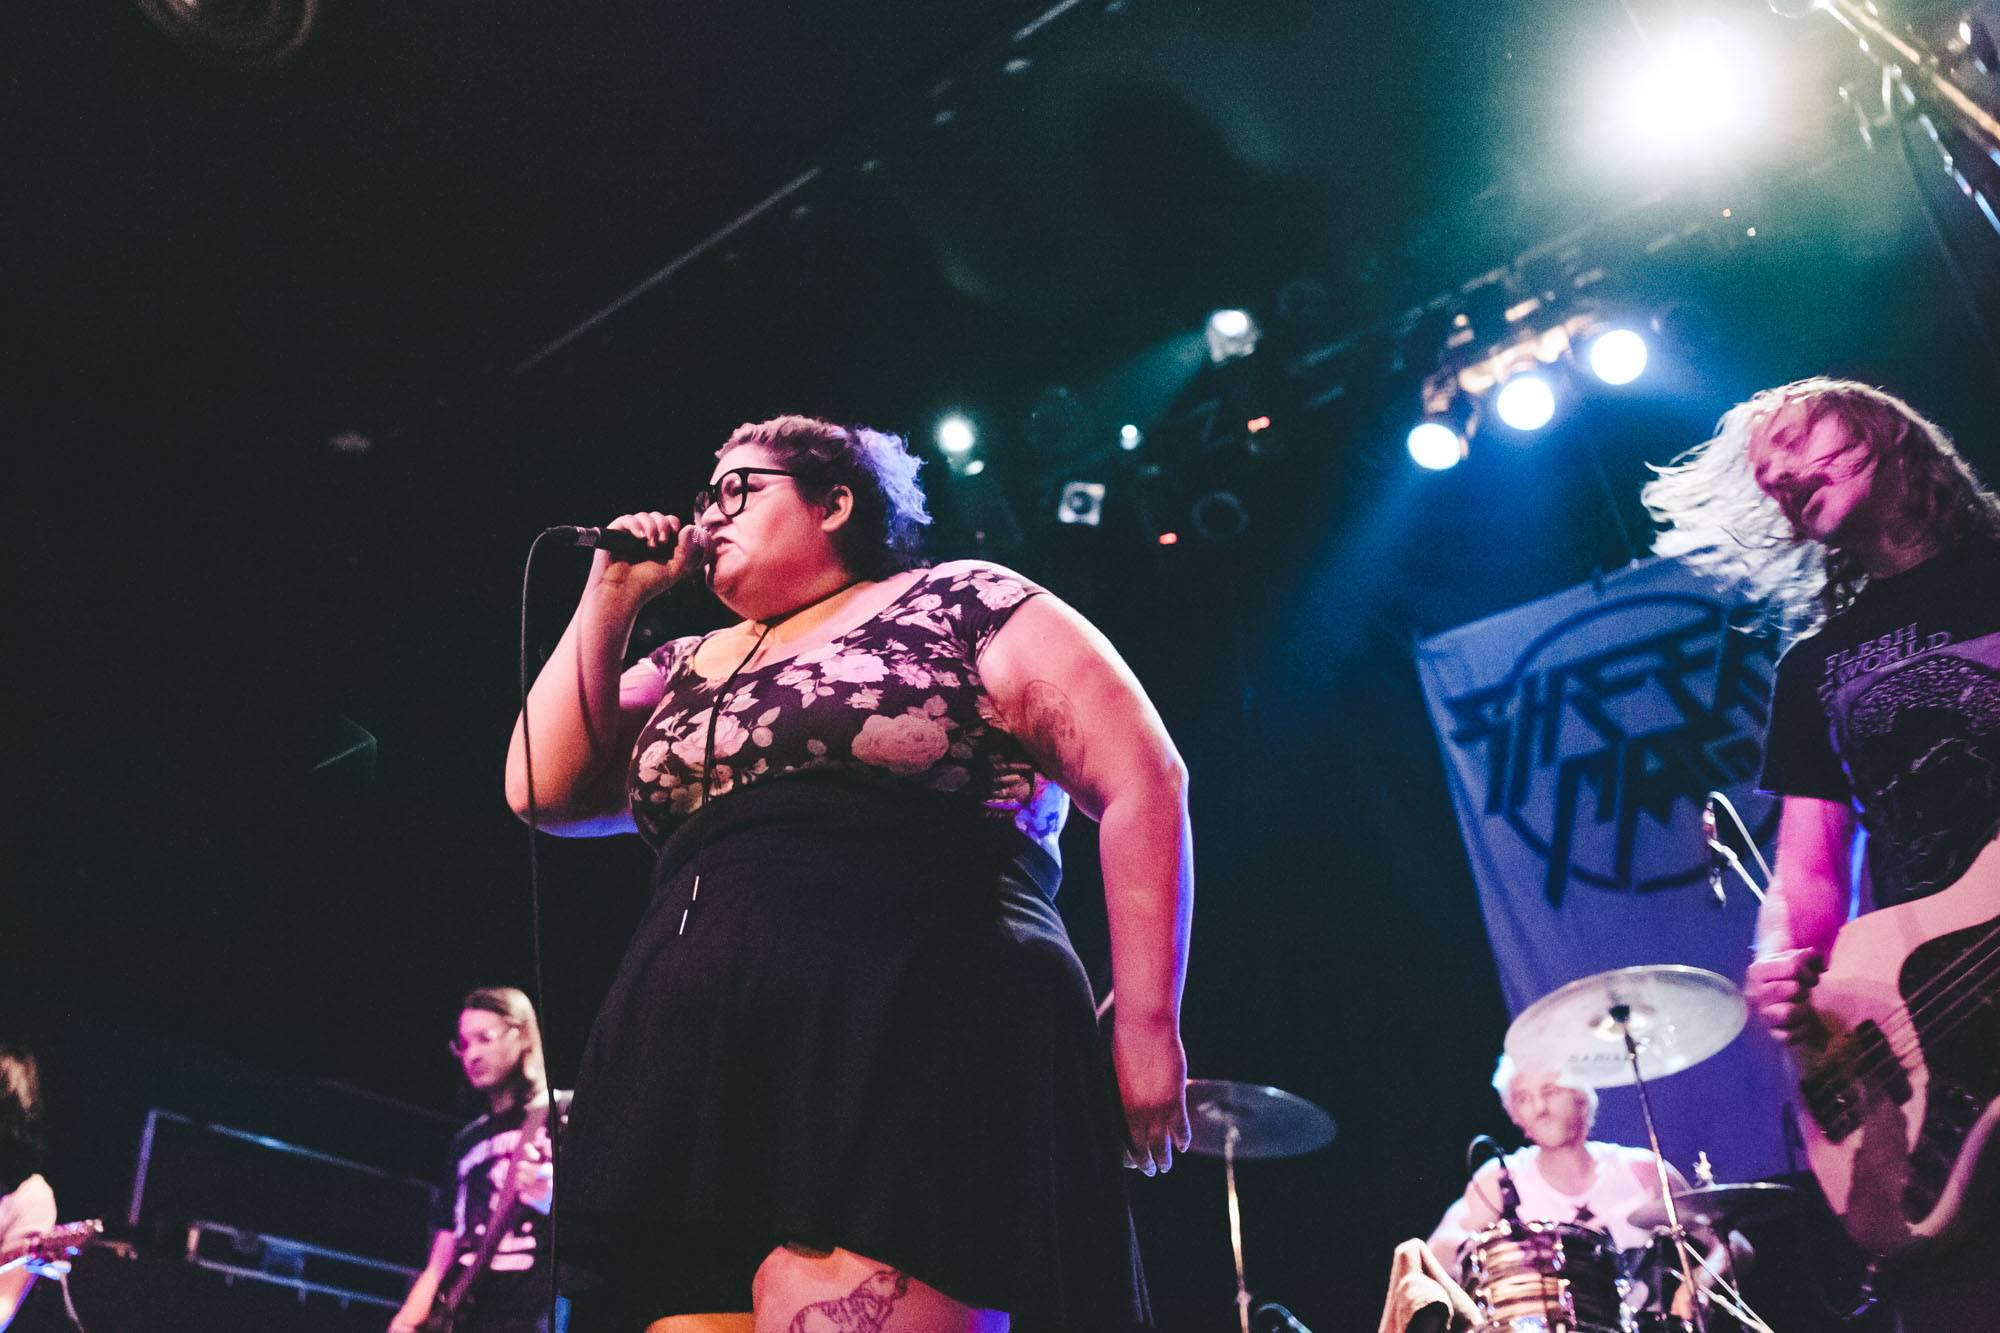 Sheer Mag at the Rickshaw Theatre, Vancouver, Sept 25 2017. Kelli Anne photo.